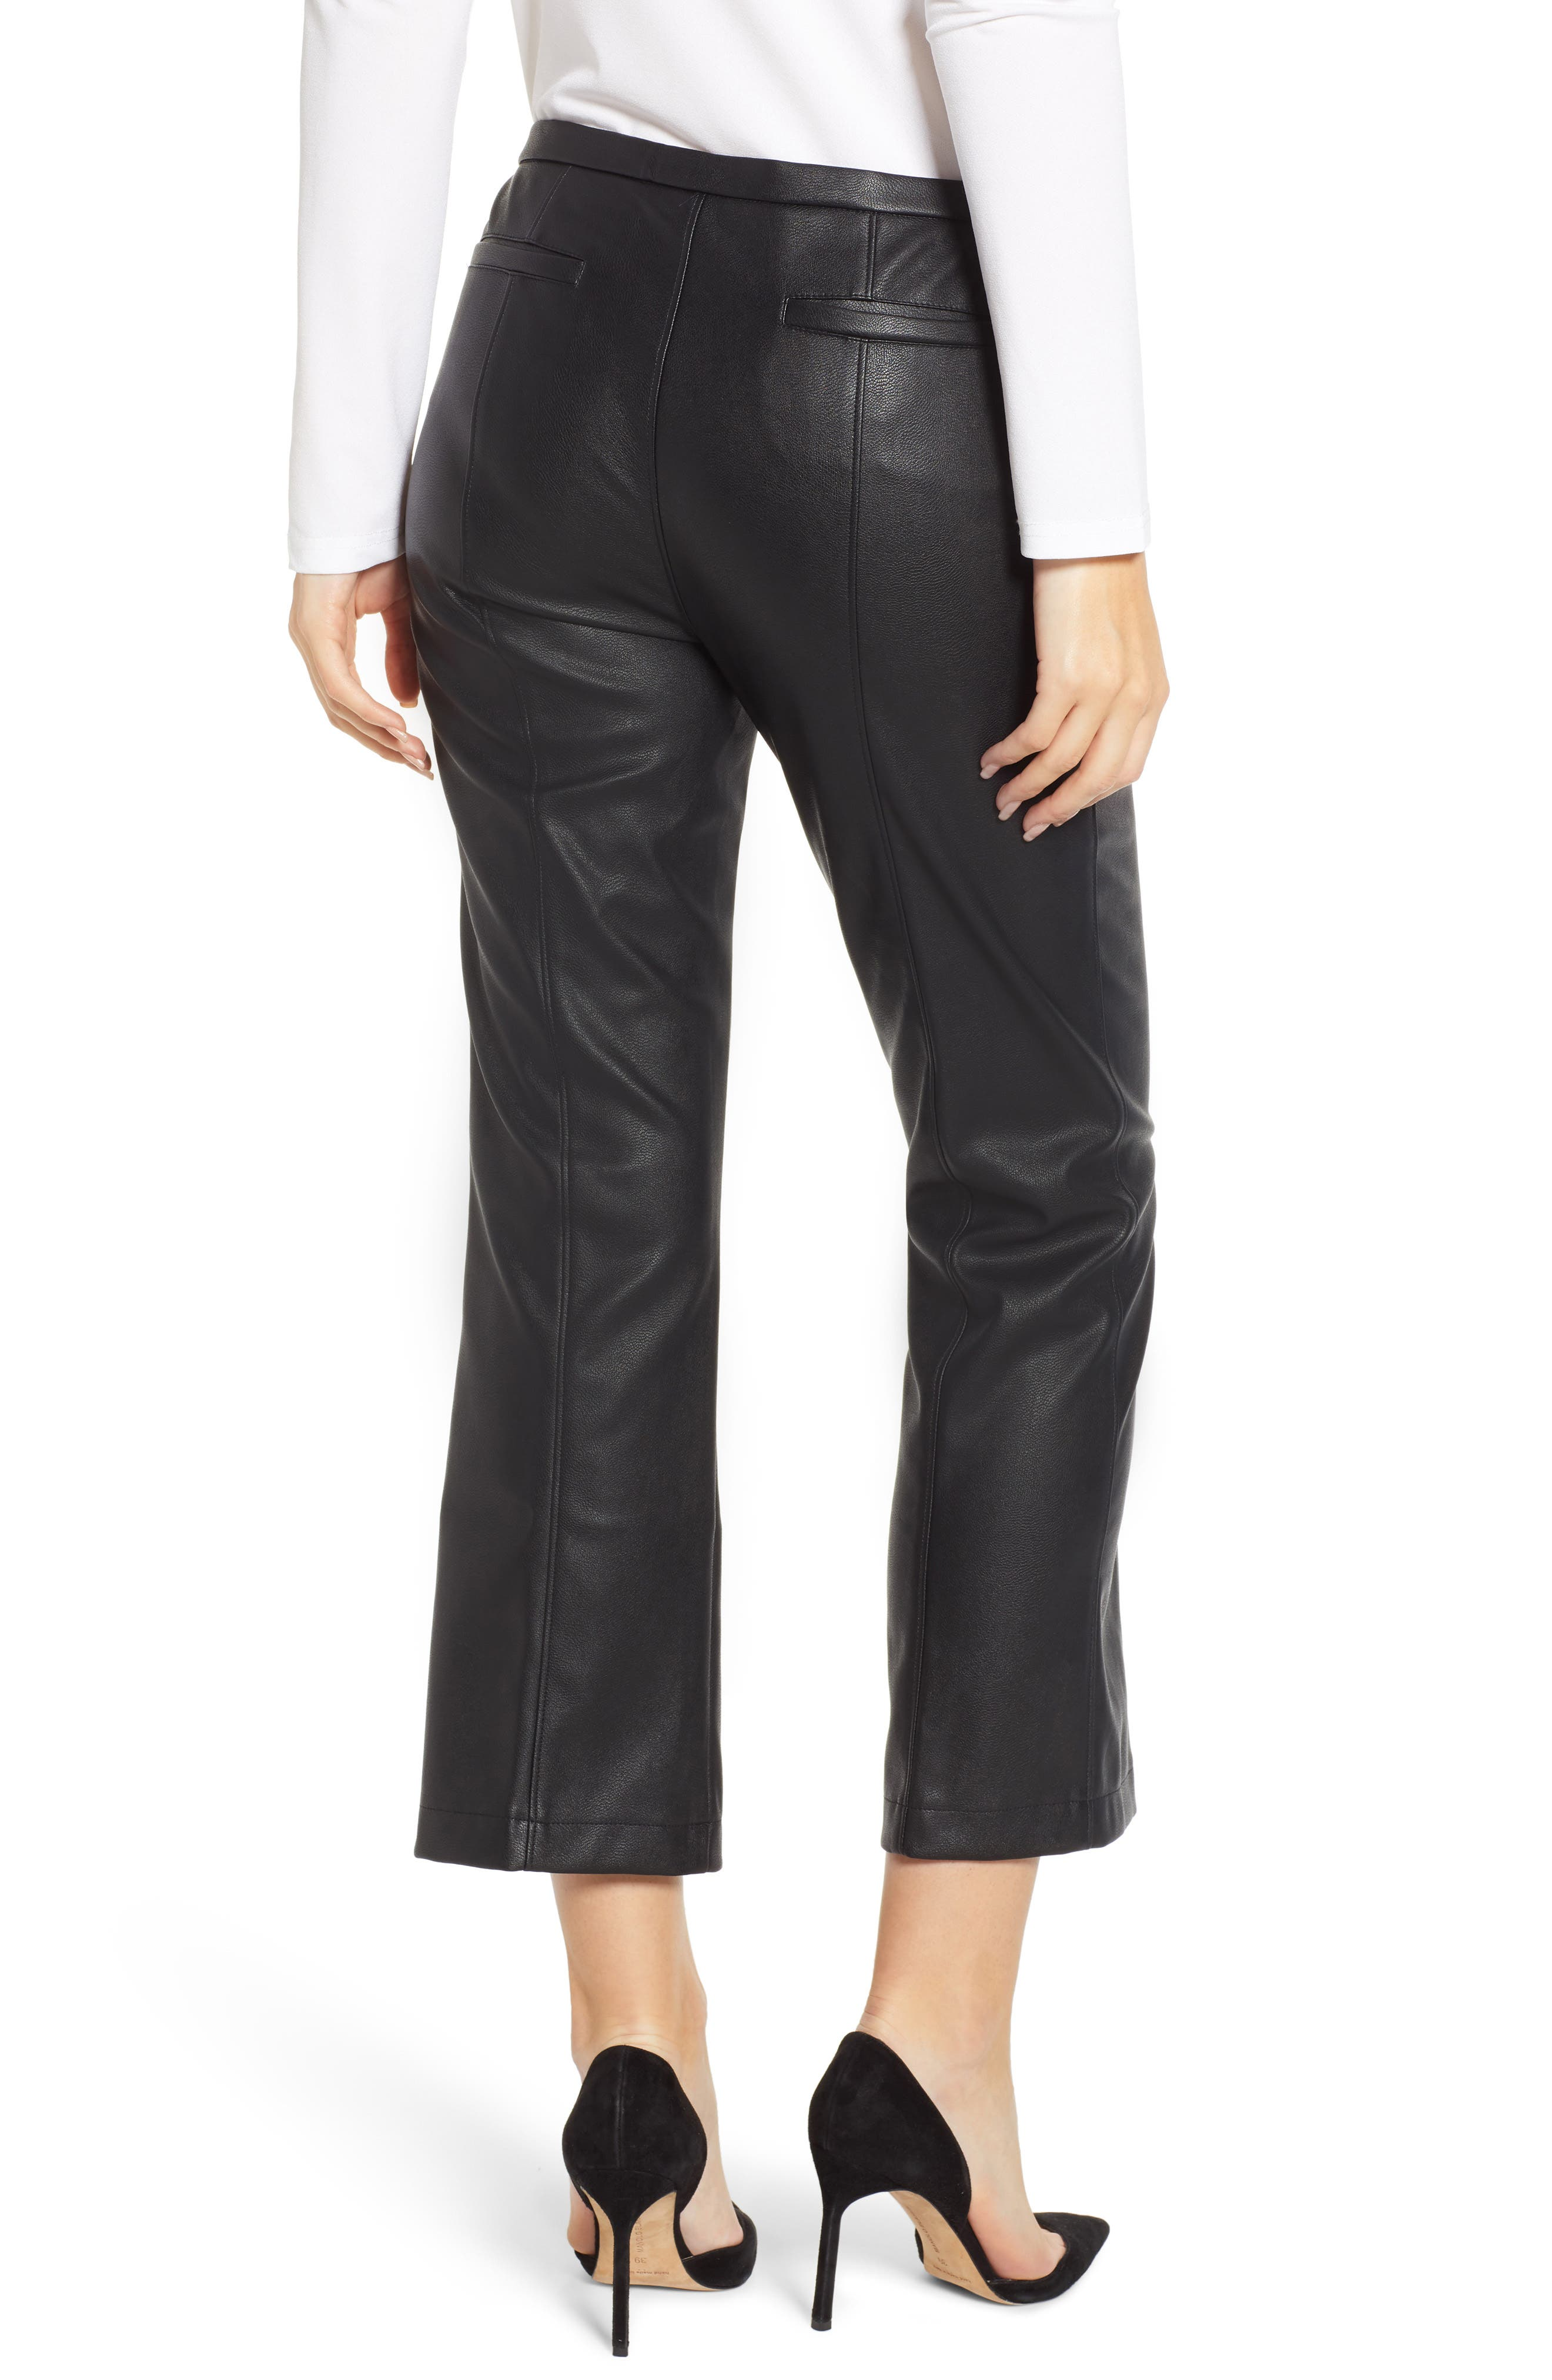 DAVID LERNER, Pintuck Flare Faux Leather Trousers, Alternate thumbnail 2, color, 001